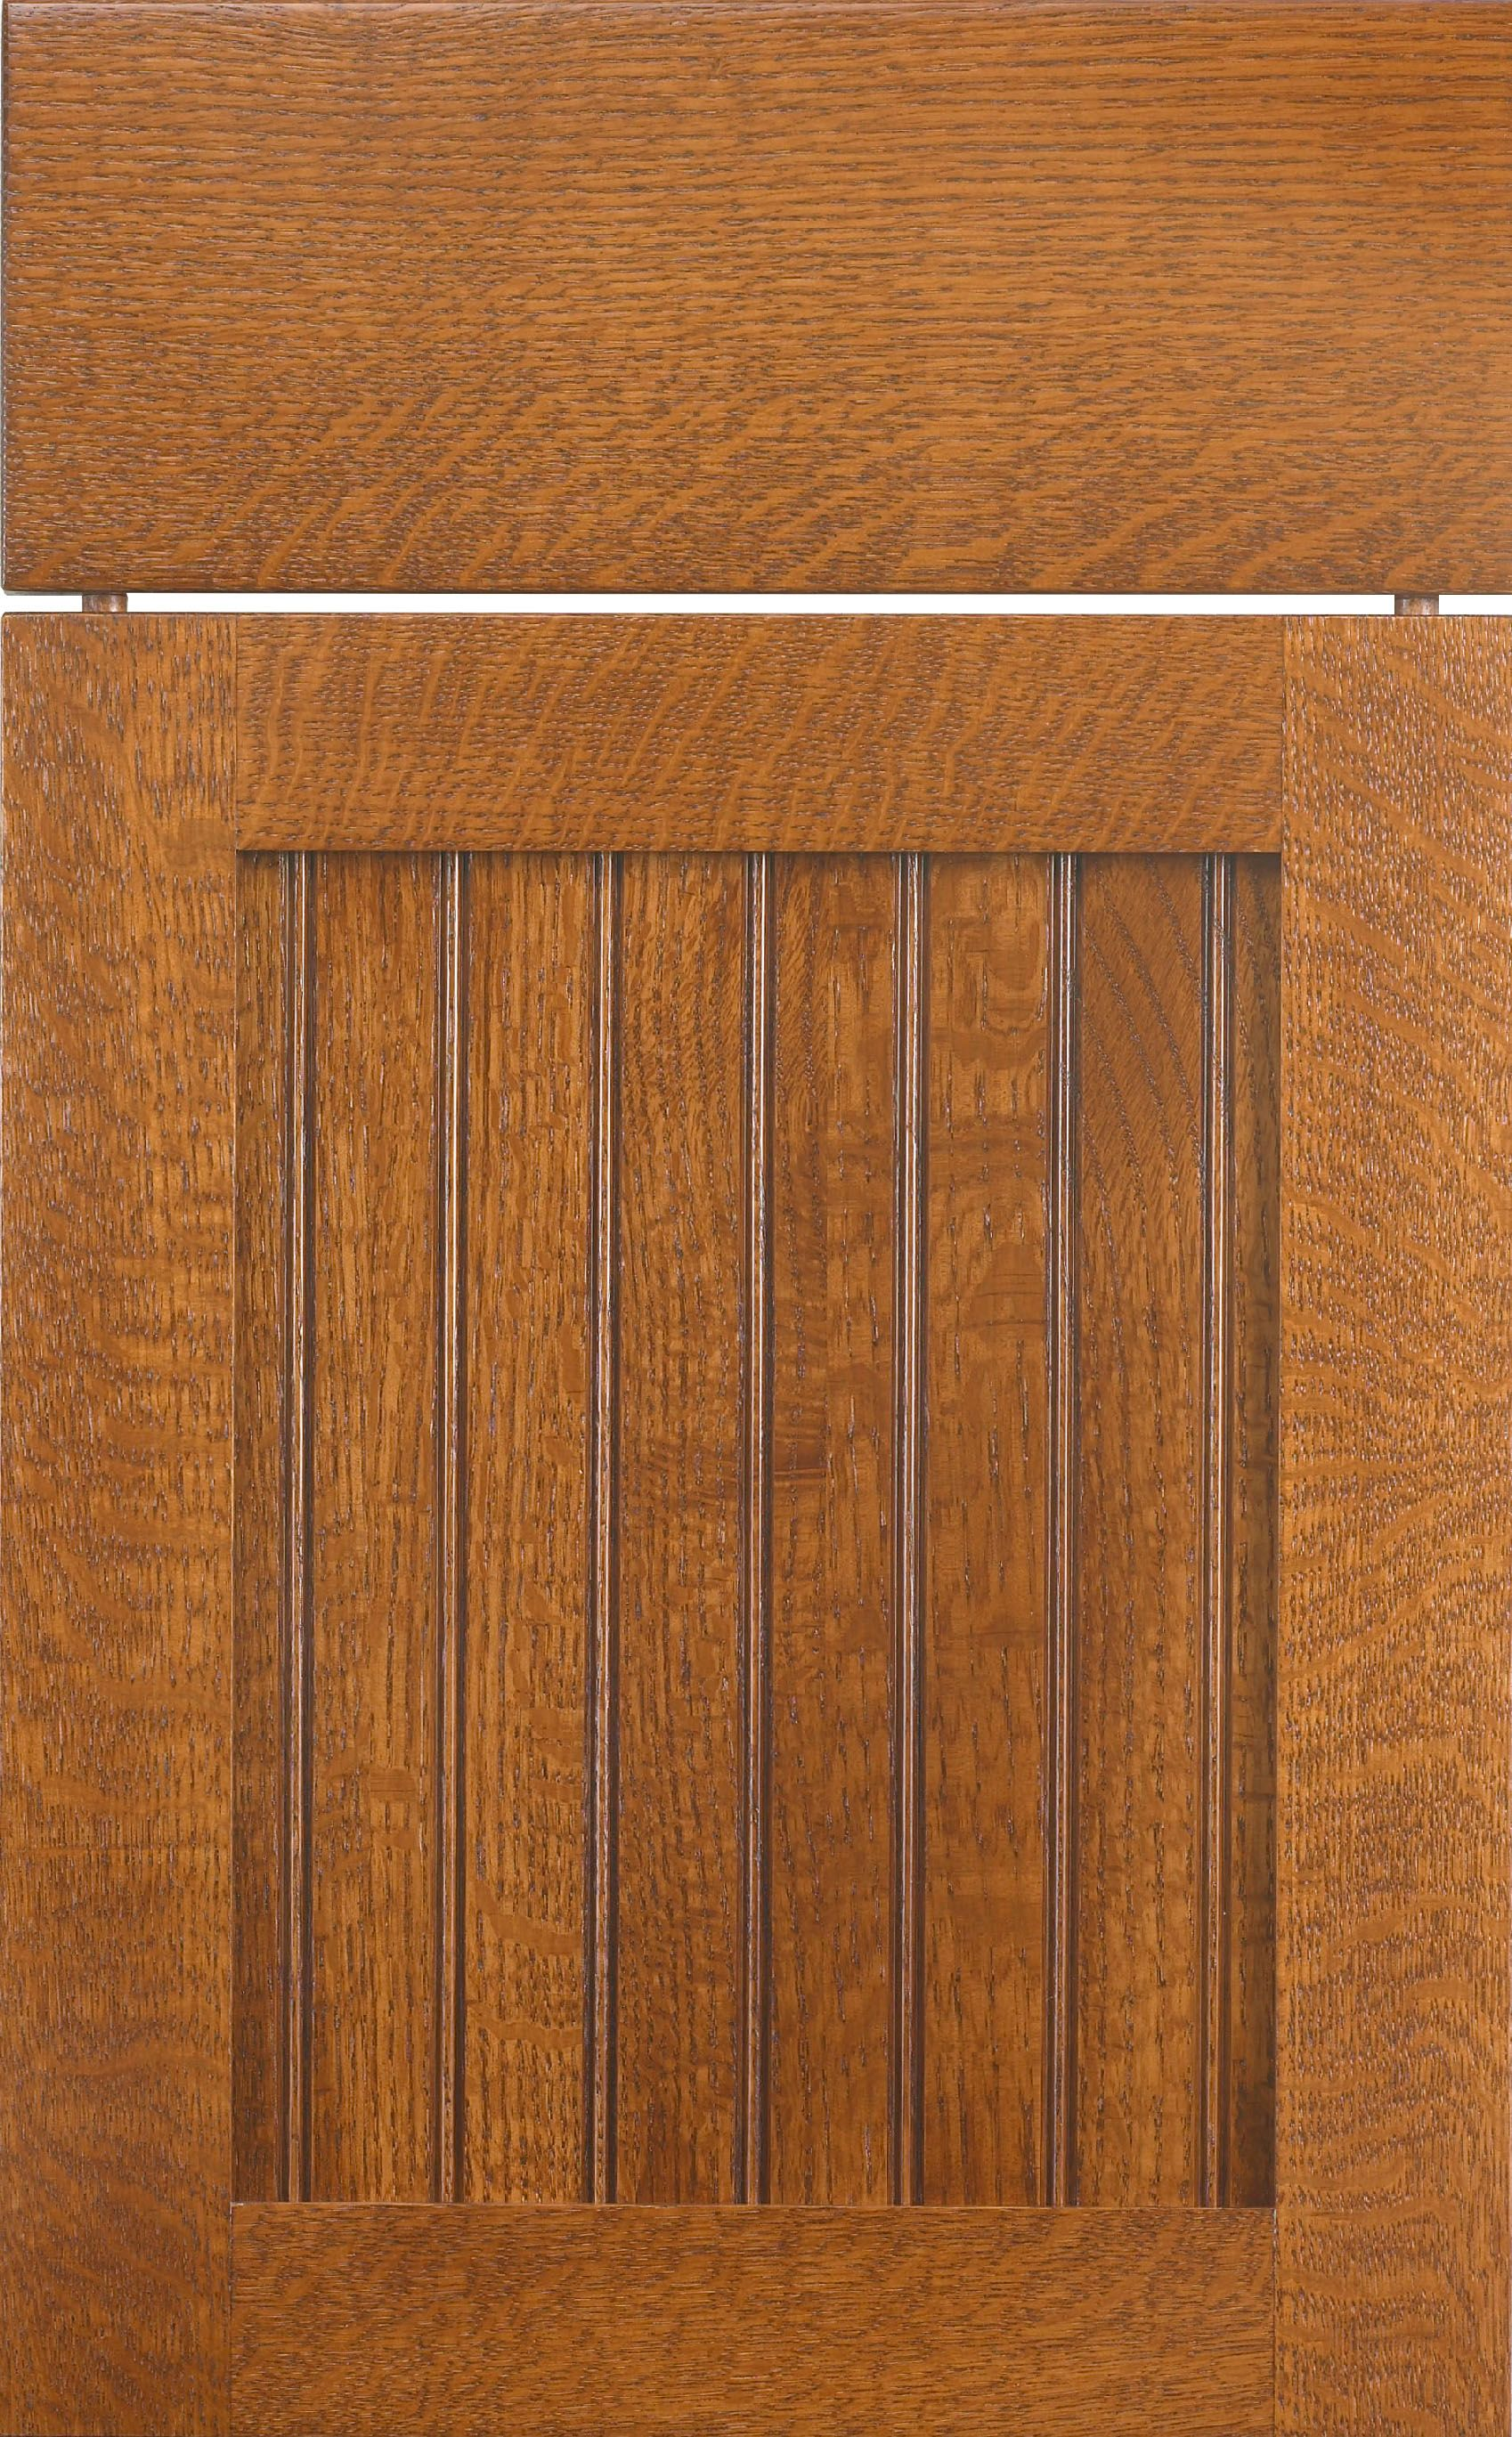 Bridgeport Beaded door style by #WoodMode shown in Acorn finish on quarter sawn oak & Bridgeport Beaded door style by #WoodMode shown in Acorn finish ... Pezcame.Com